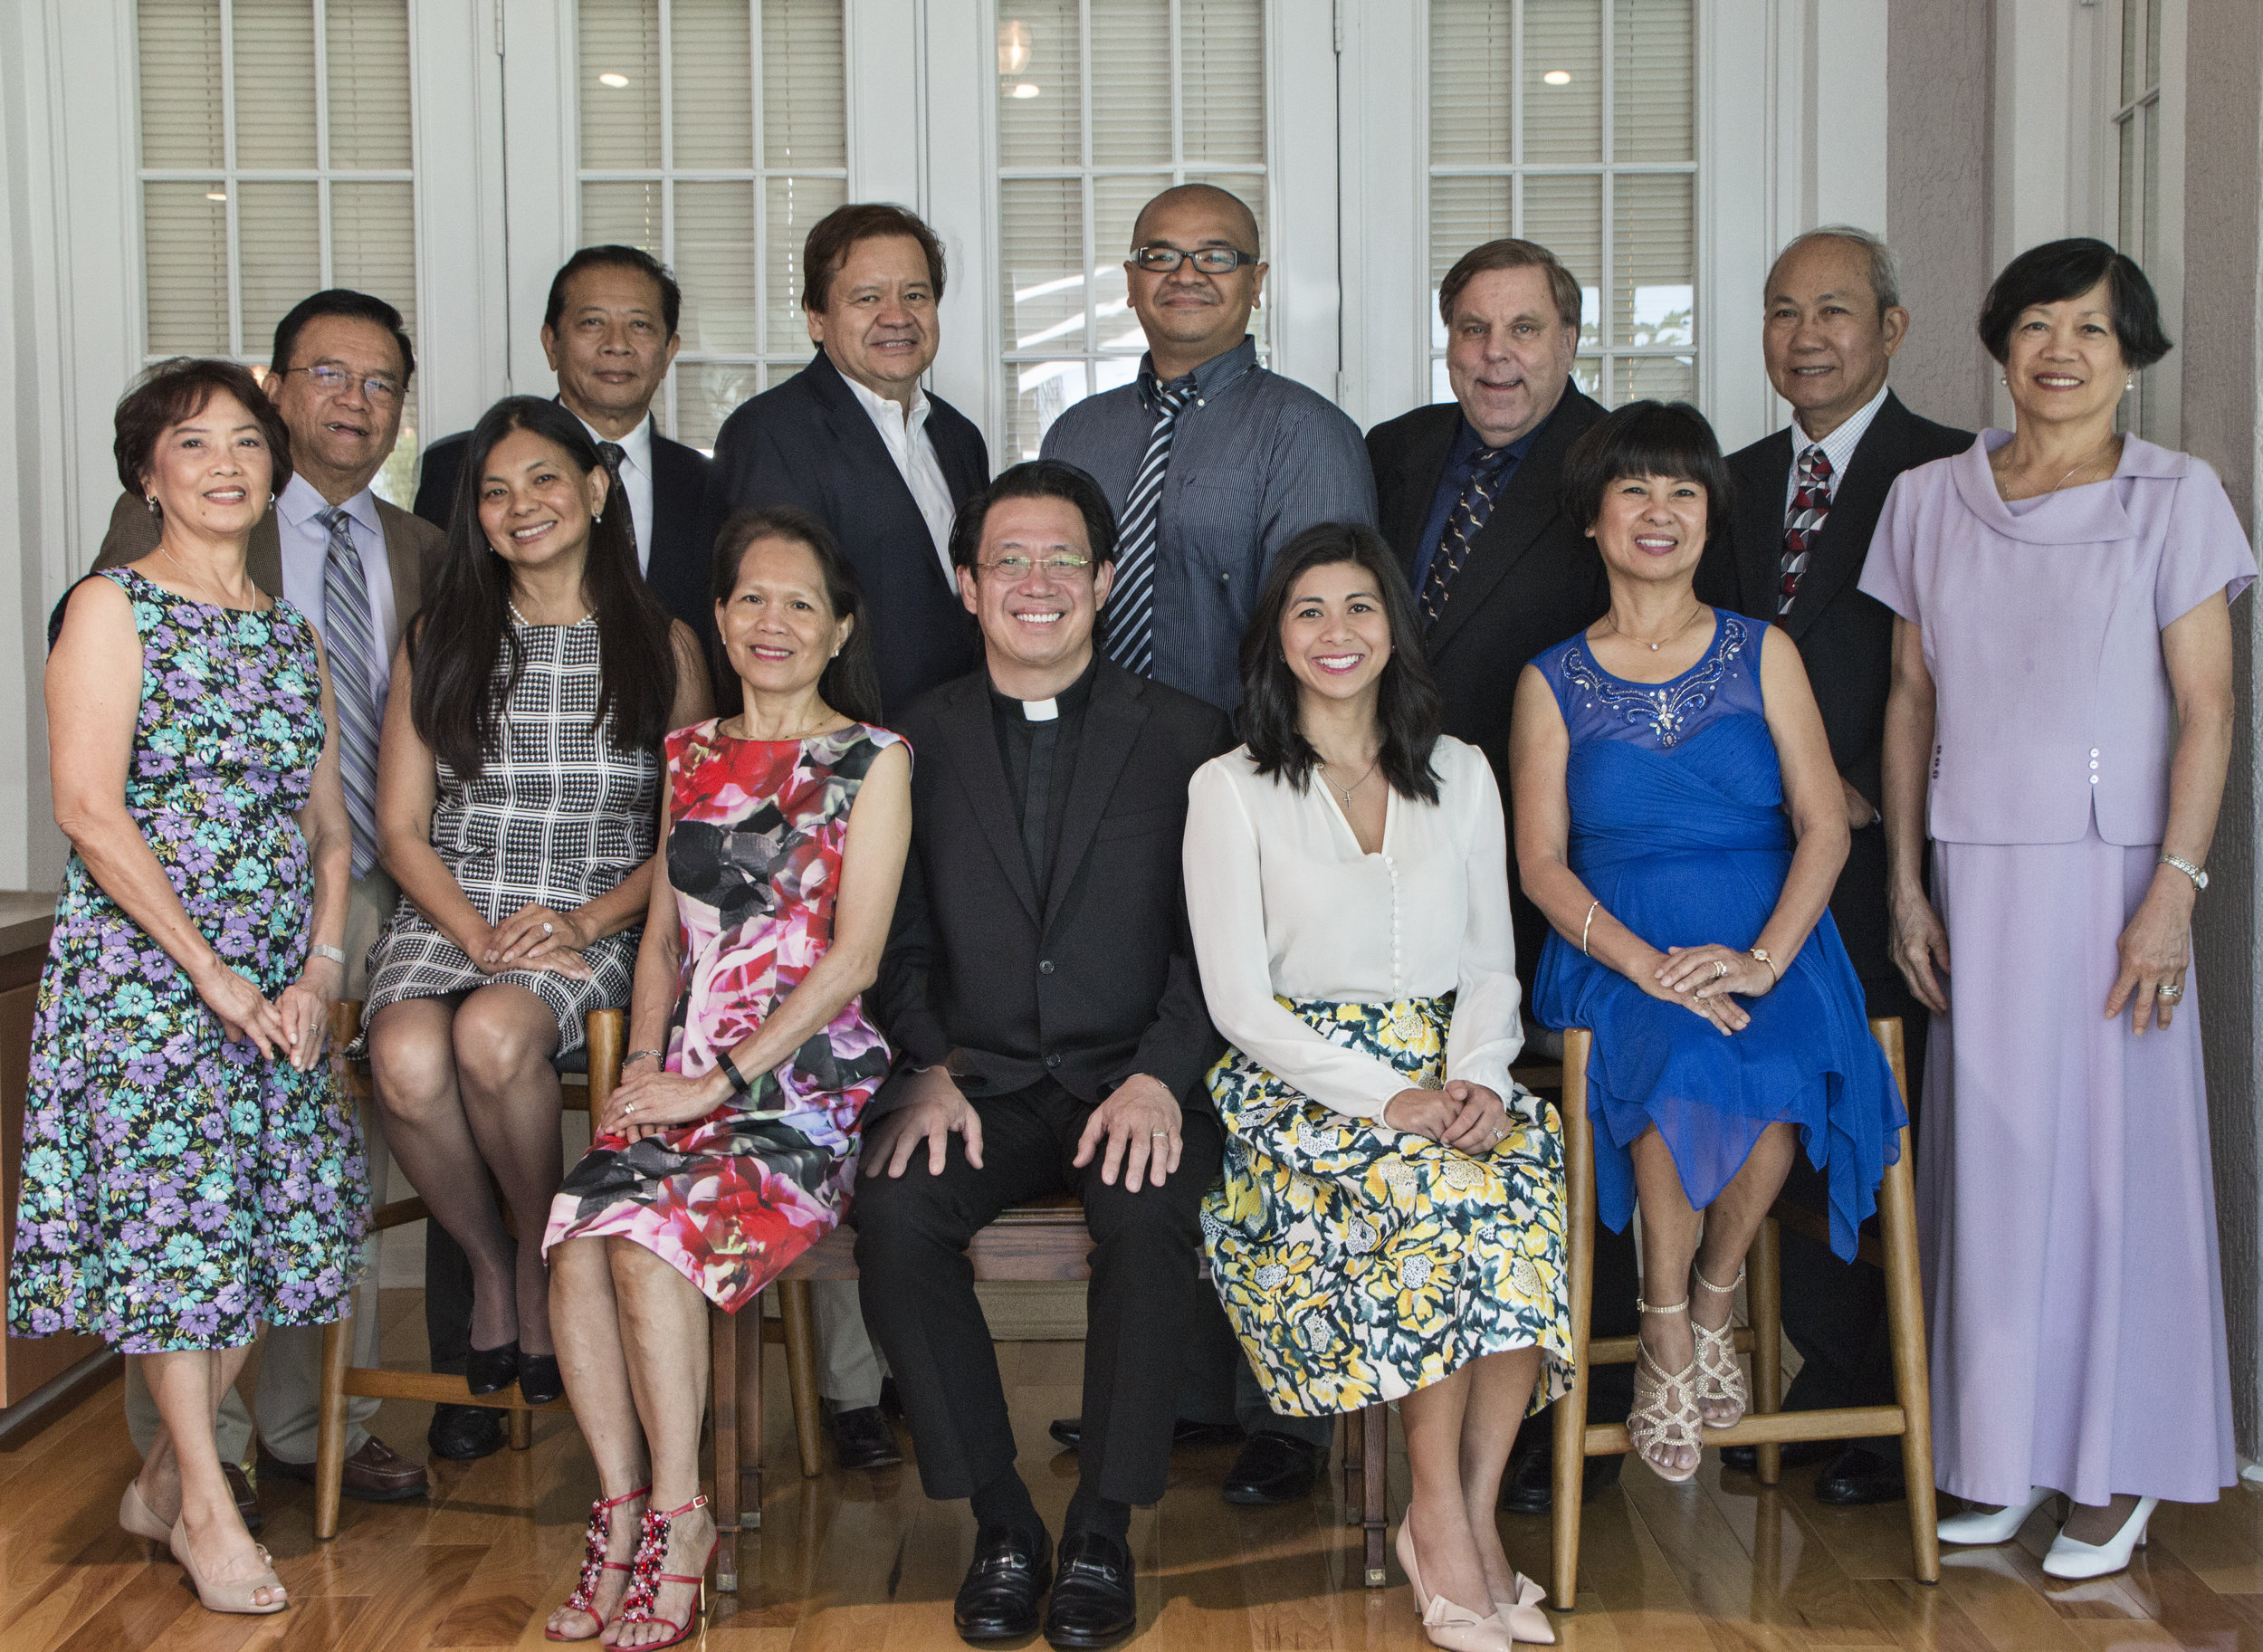 """Back Row (from Left to Right):  Tito Garcia (Chairperson), Dr. Patrick Gonzales (Chairperson), Whiteford Lewis, Glenn """"Jace"""" Caparas, Ronald Marut, Frank Marquinez (Treasurer)    Front Row (from Left to Right):  Bella Garcia (Secretary), Liza Gonzales (Chairperson), Myrna Lewis, Father Kenny Aquino (Founder & Spiritual Director), Janice Pinuela, Tess Marut, Nitz Marquinez"""